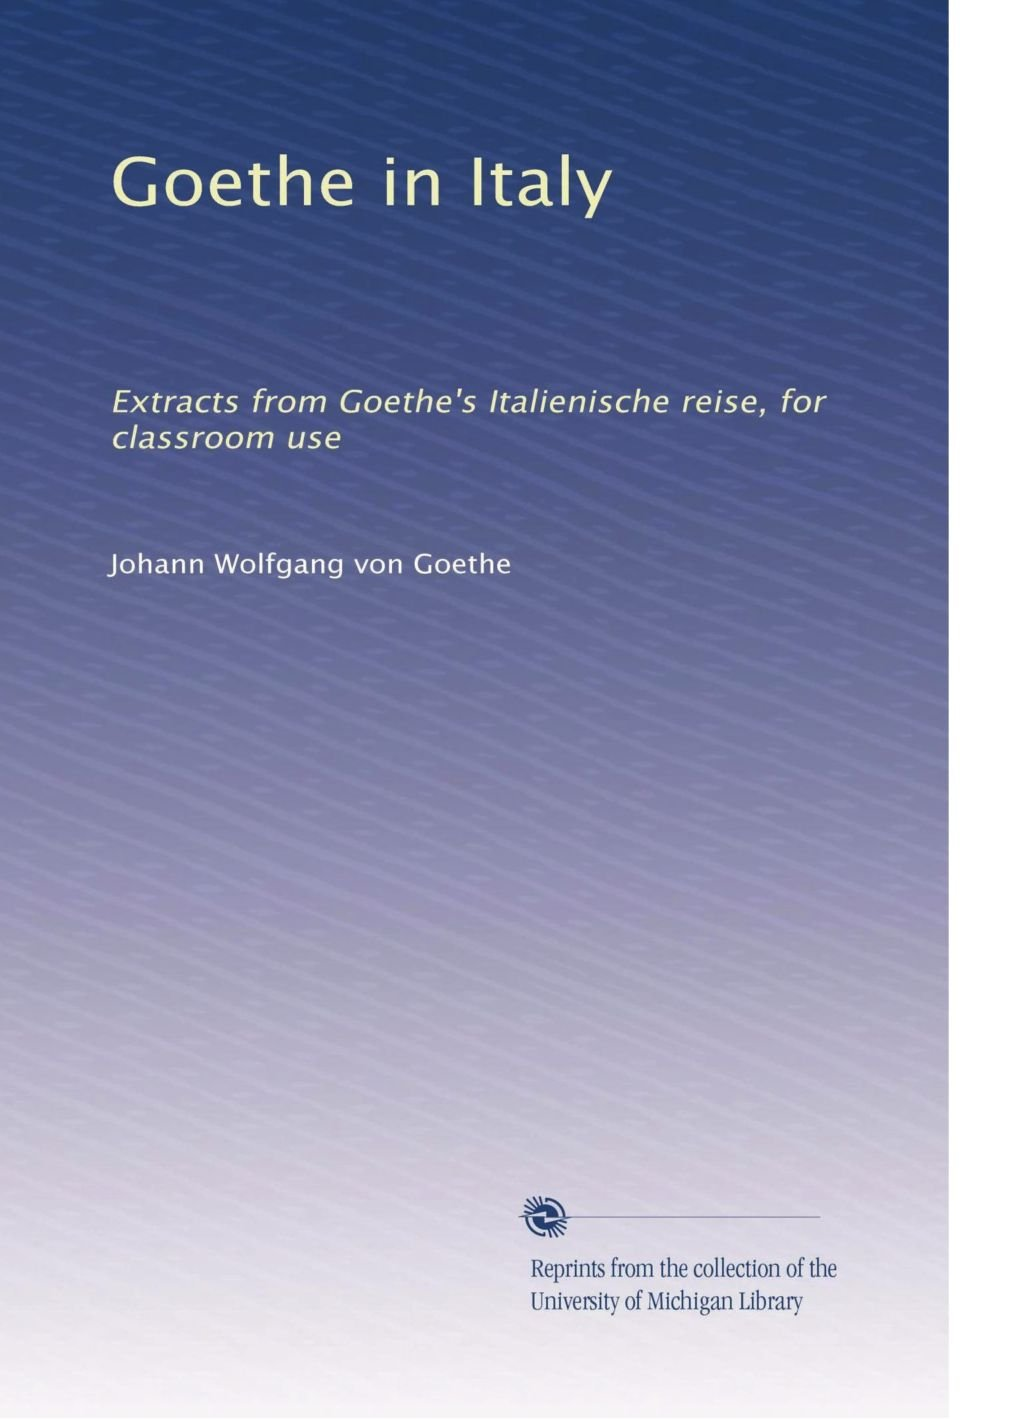 Download Goethe in Italy: Extracts from Goethe's Italienische reise, for classroom use ebook